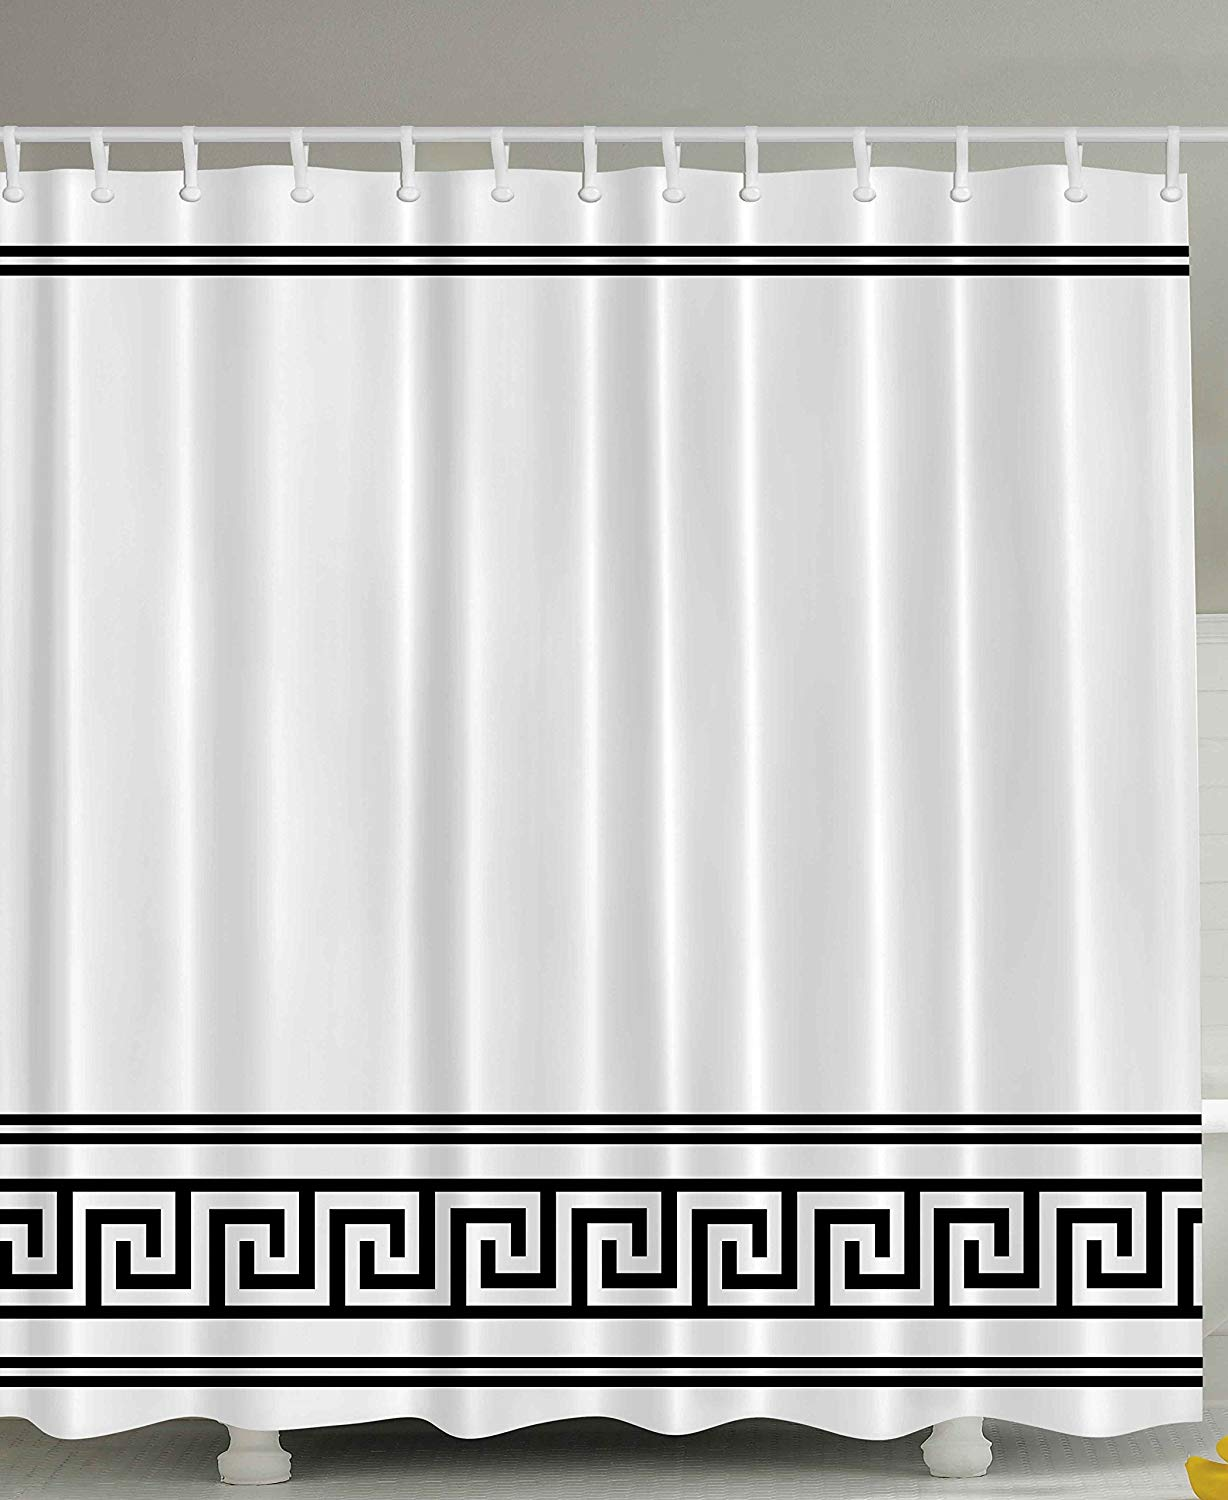 Best Top Curtain Classic White List And Get Free Shipping N9emfim3f